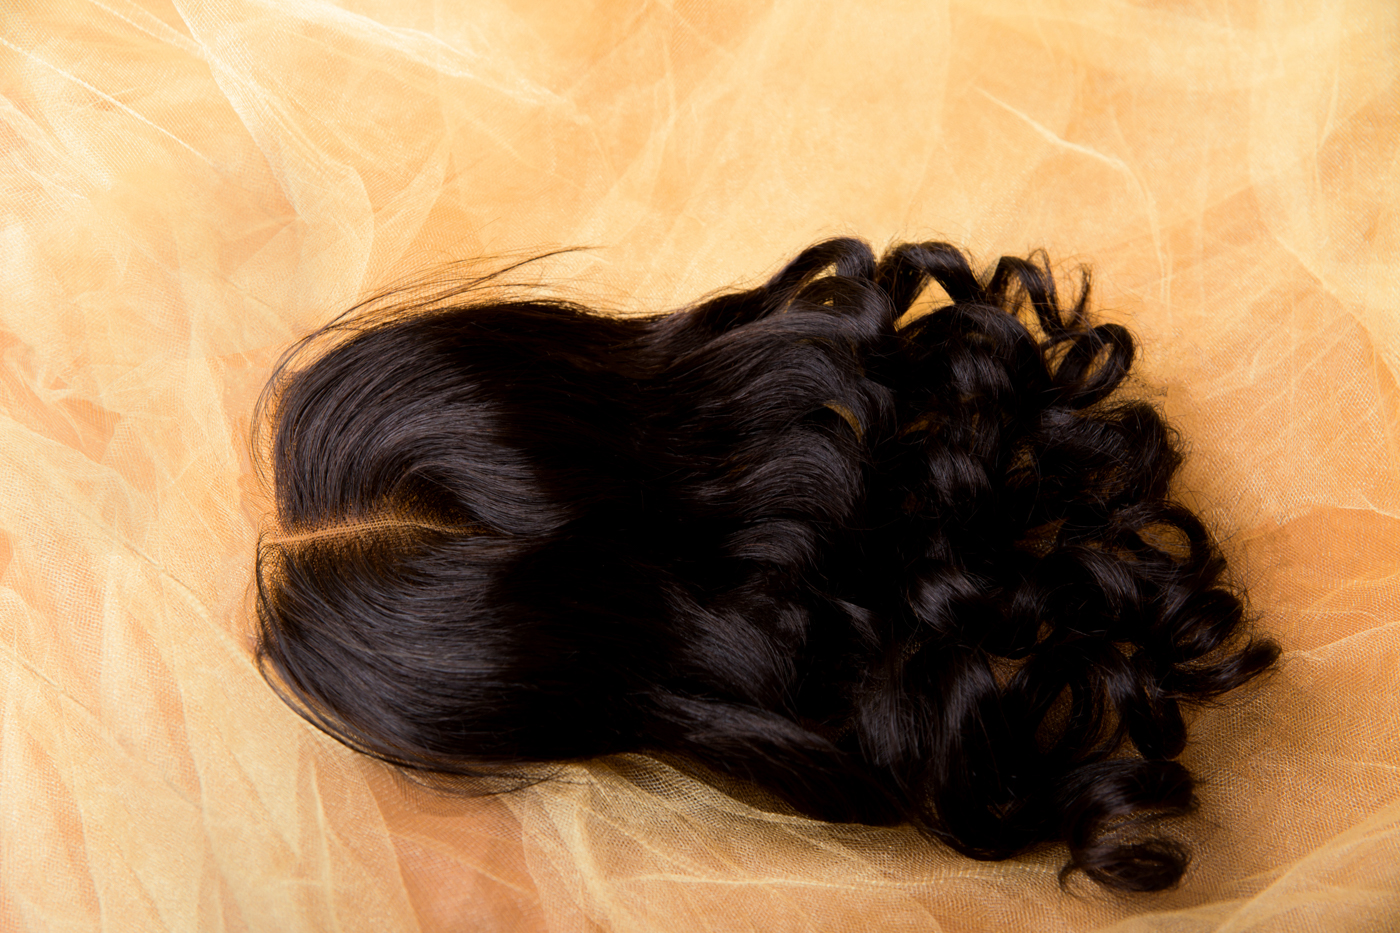 its-all-about-hair-commercial-product-photo-shoot-ksenia-pro-photography-6